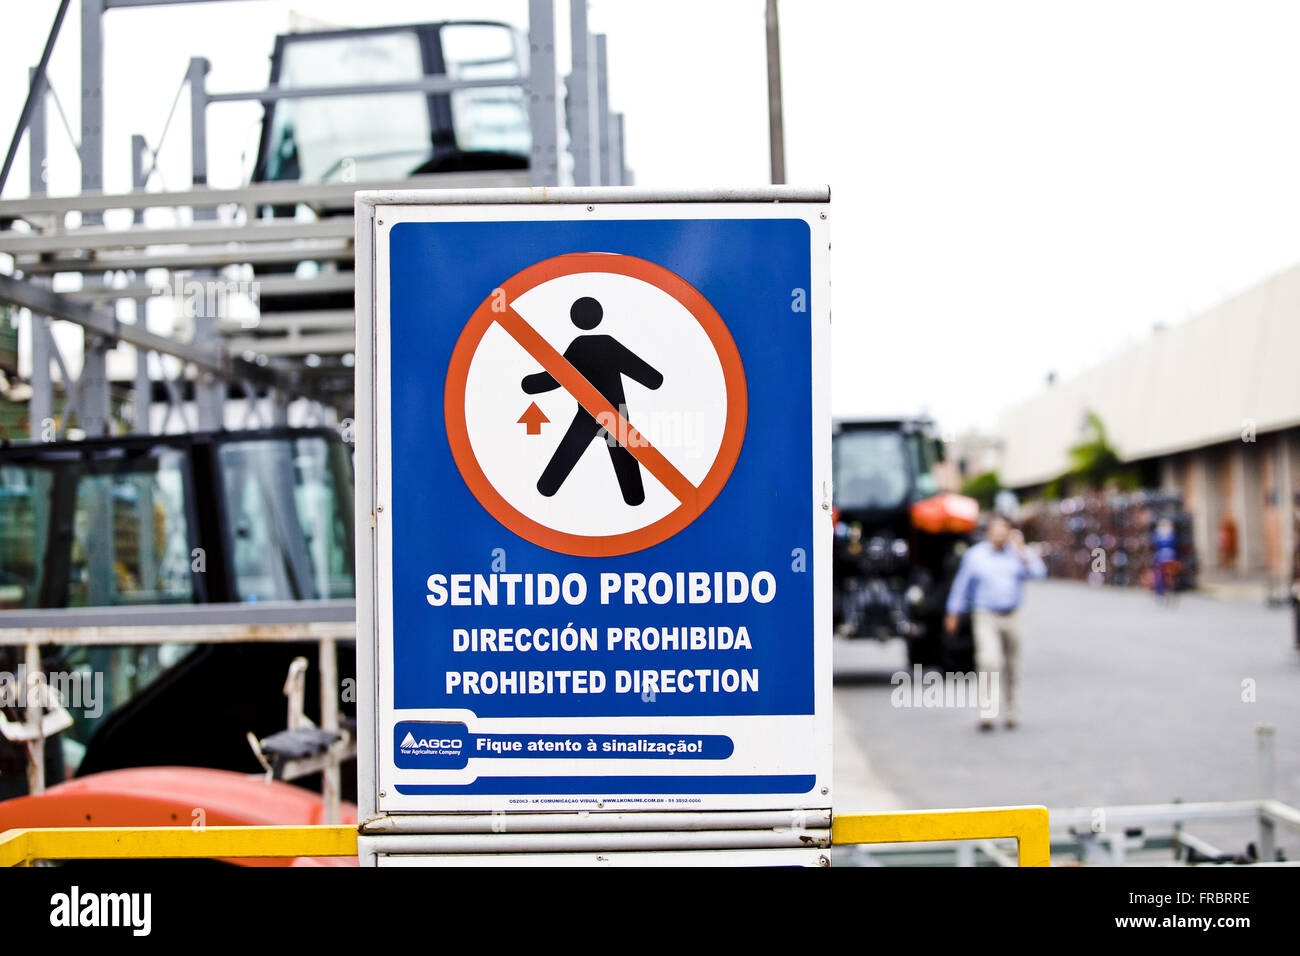 Signaling forbidden patio sense of manufactures agricultural machinery - Stock Image